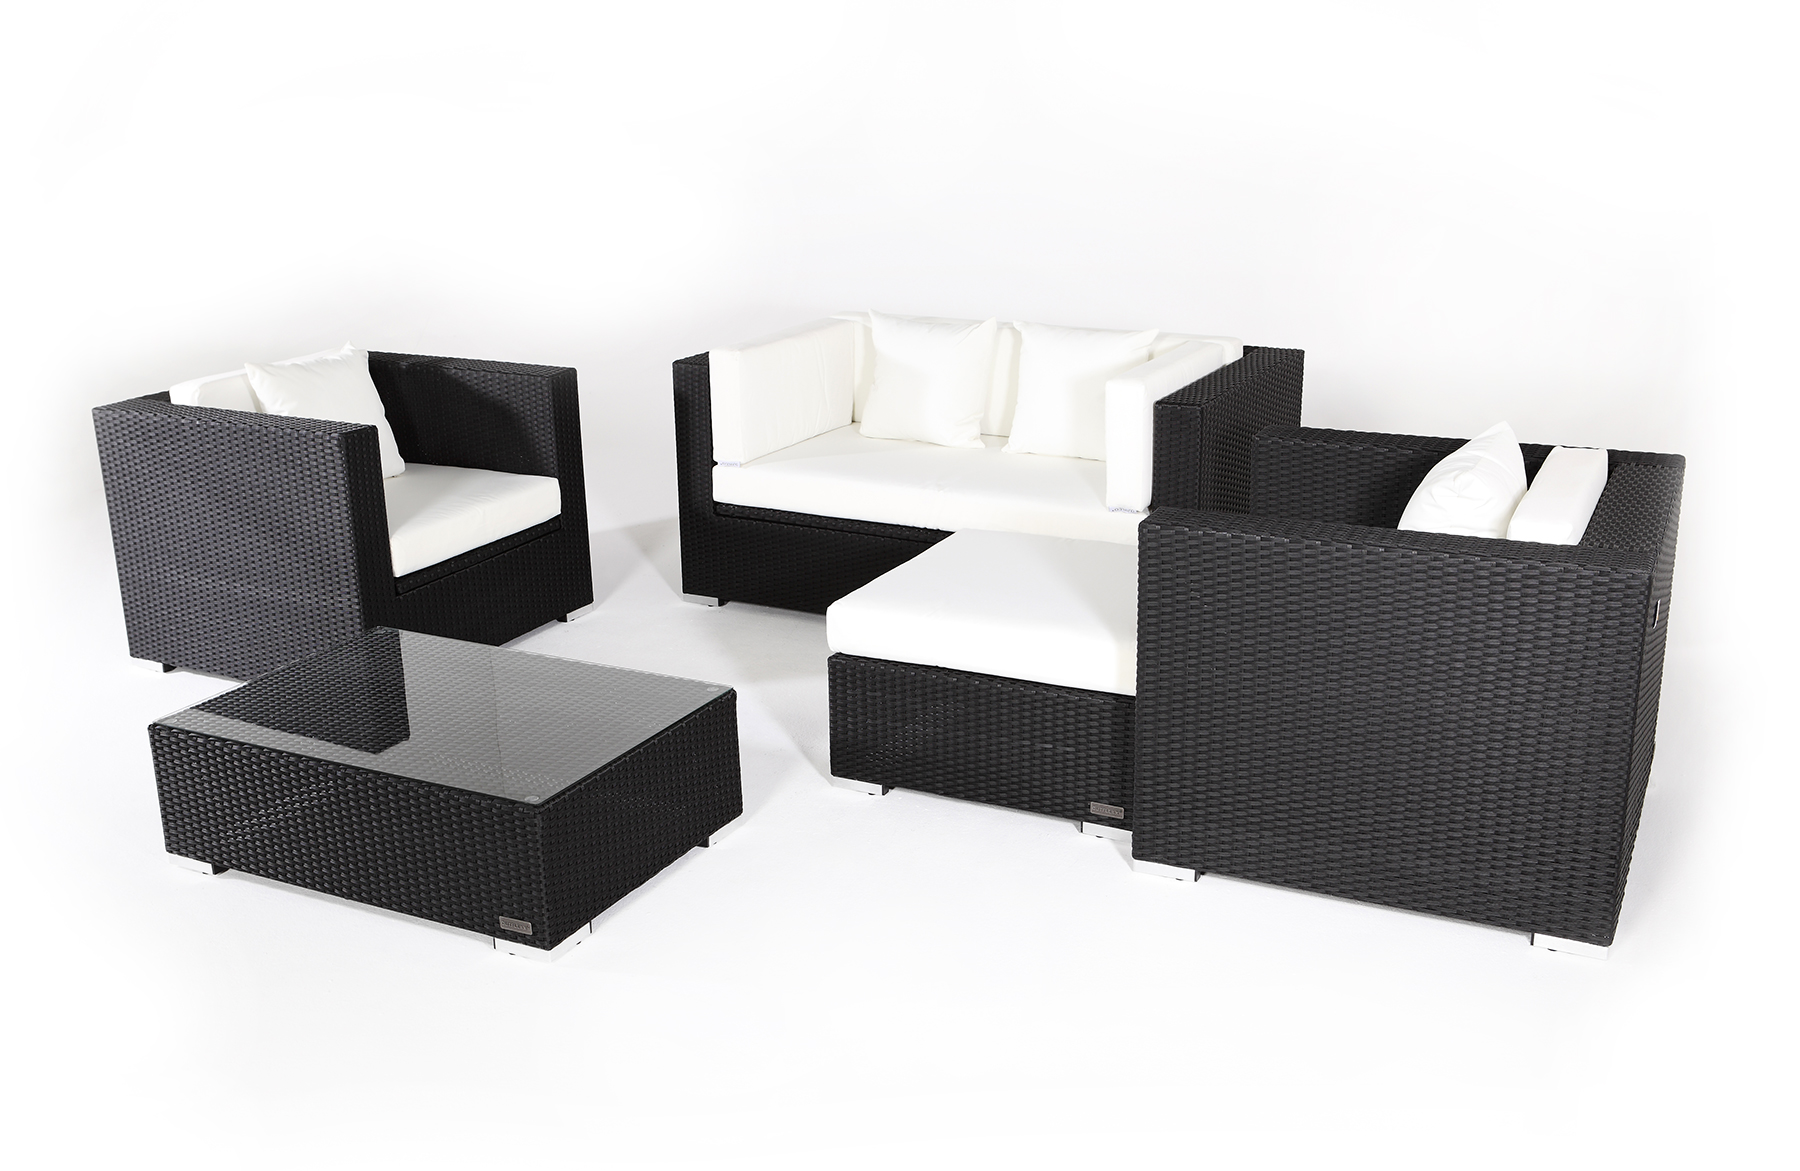 outflexx gartenm bel my blog. Black Bedroom Furniture Sets. Home Design Ideas